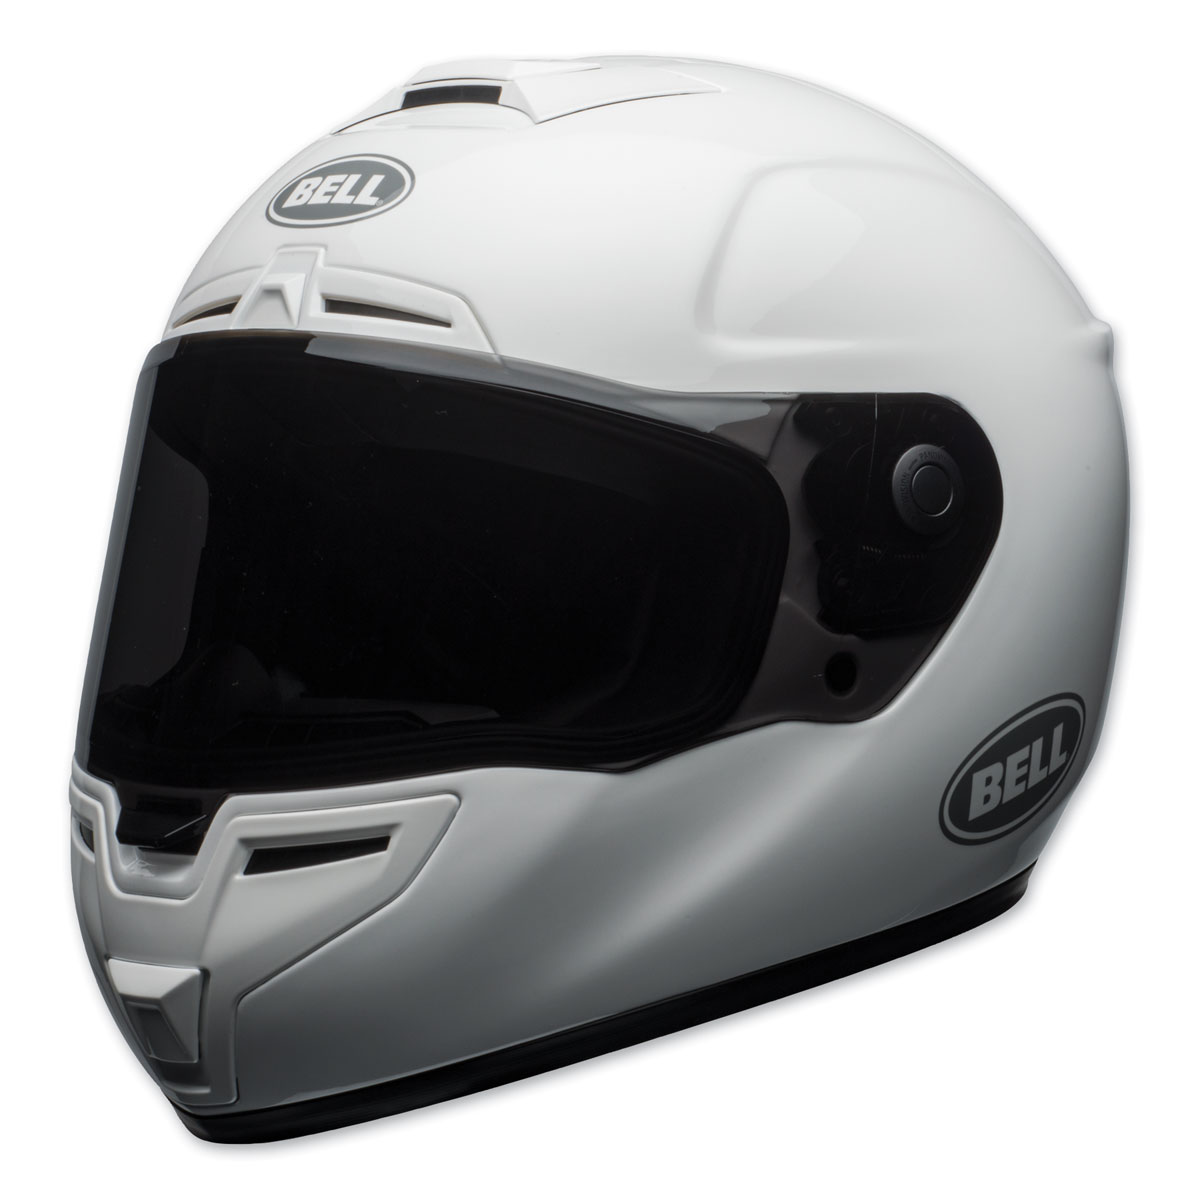 Bell SRT Gloss White Full Face Helmet